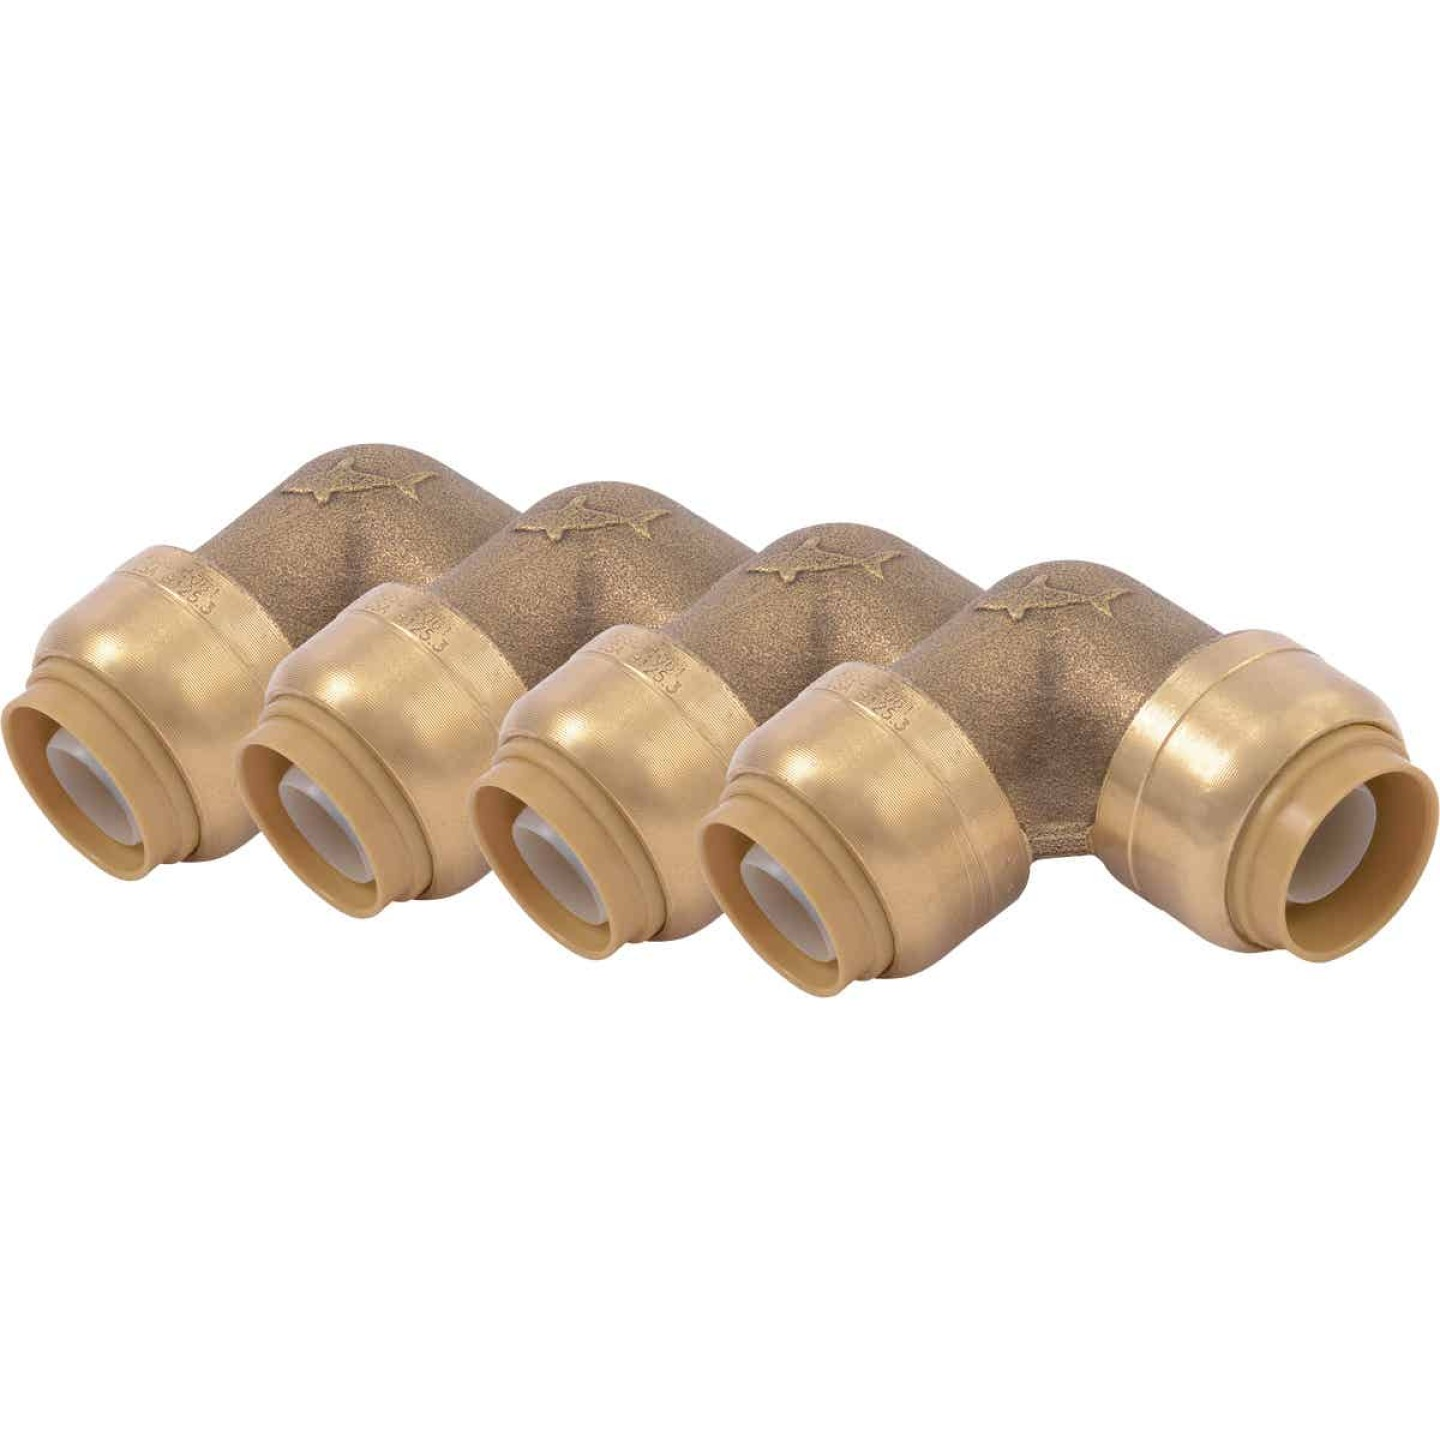 SharkBite 1/2 In. x 1/2 In. Push-to-Connect 90 Degree Brass Elbow (4-Pack) Image 1